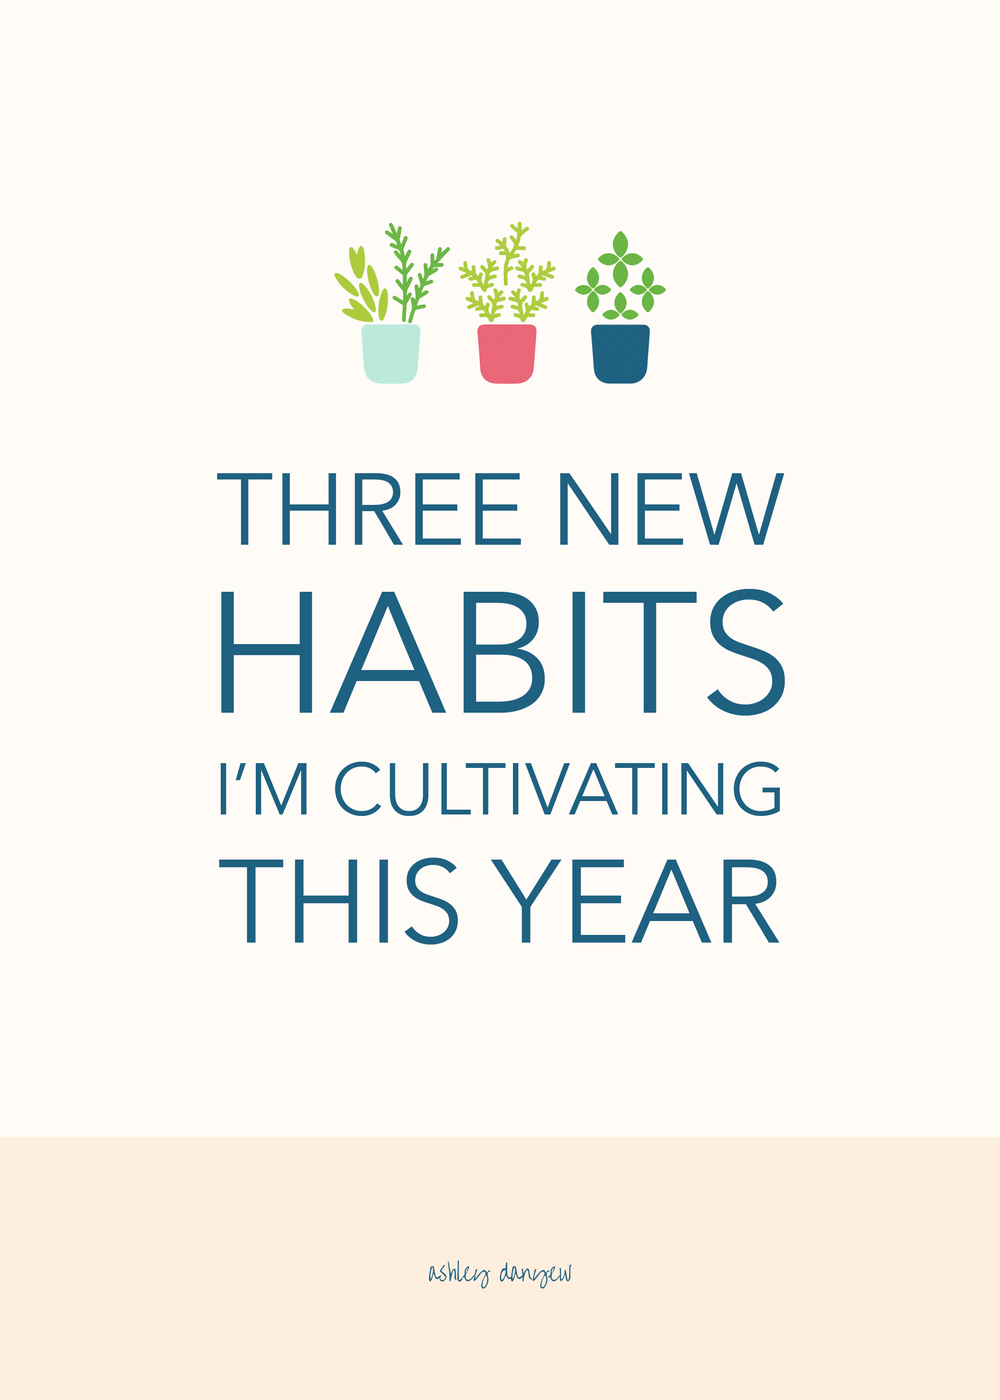 Three New Habits I'm Cultivating This Year